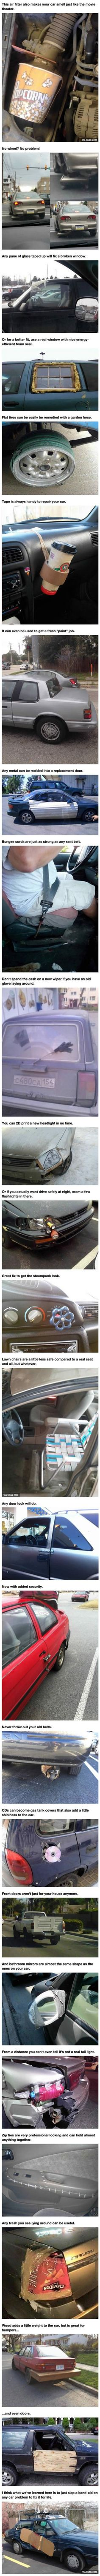 25 Ingenious Car Repairs That Are Too Creative For Their Own Good